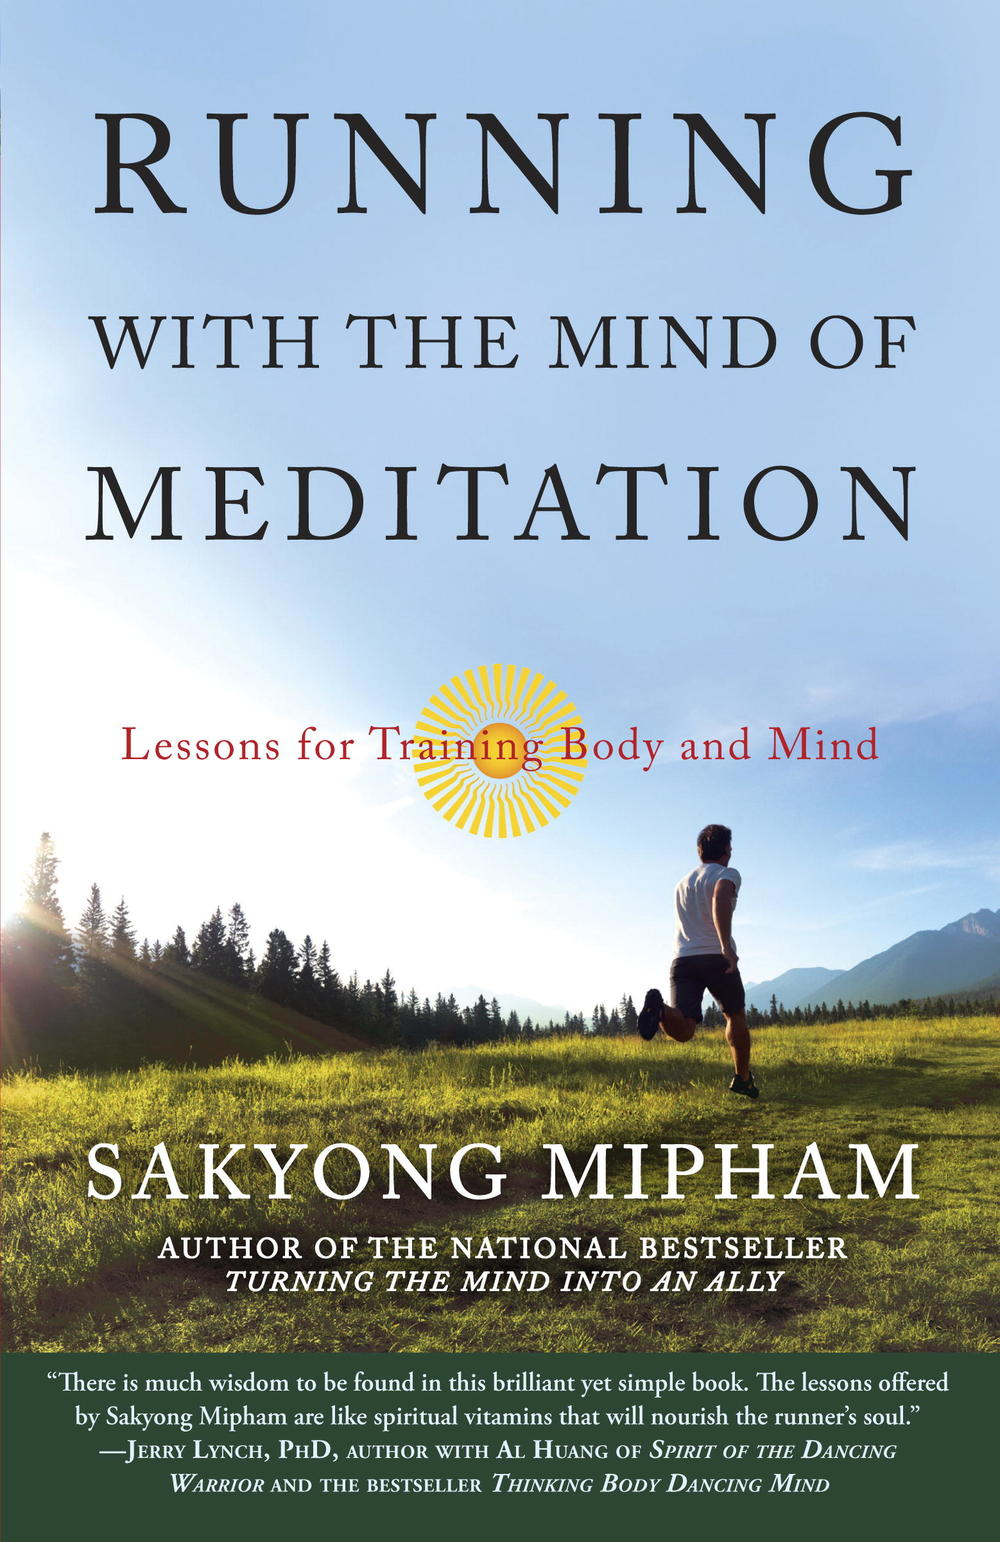 Running with the Mind of Meditation - Sakyong Mipham